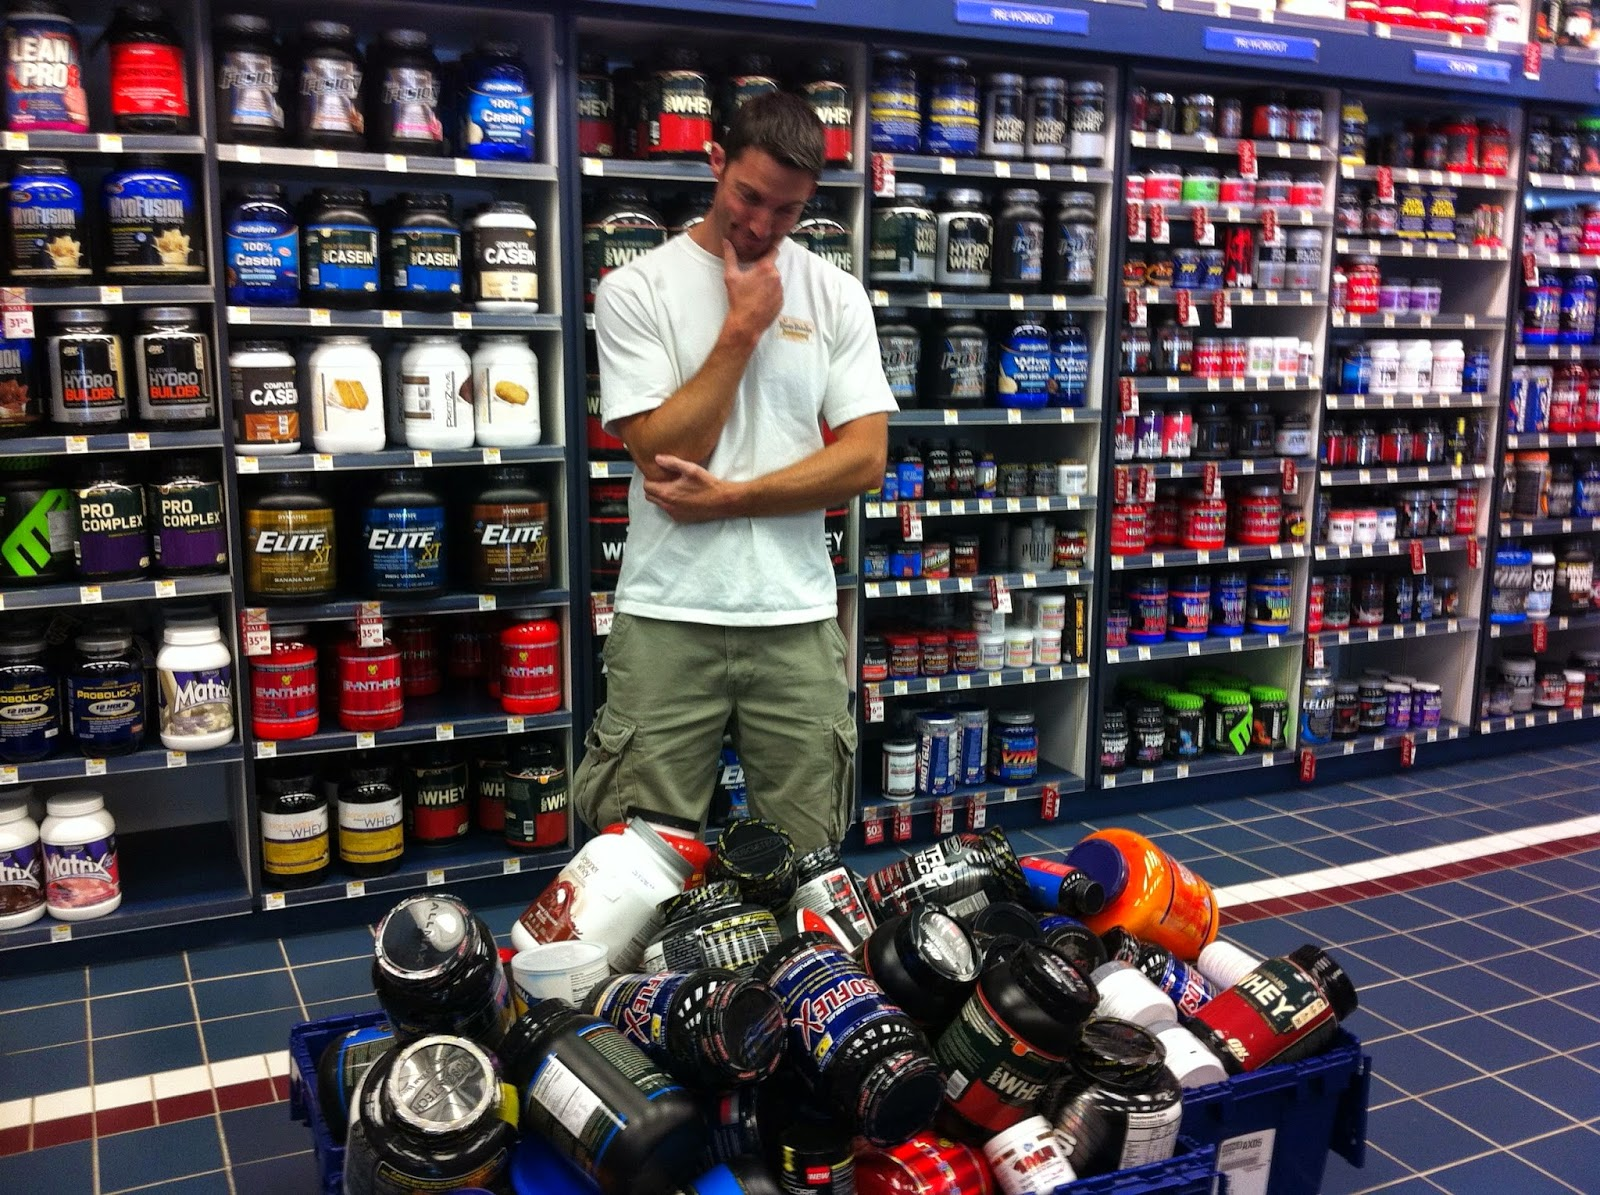 NJ Most trustedNJ SPORTS SUPPLEMENTS TRUE INGREDIENT SUBSTANCES!